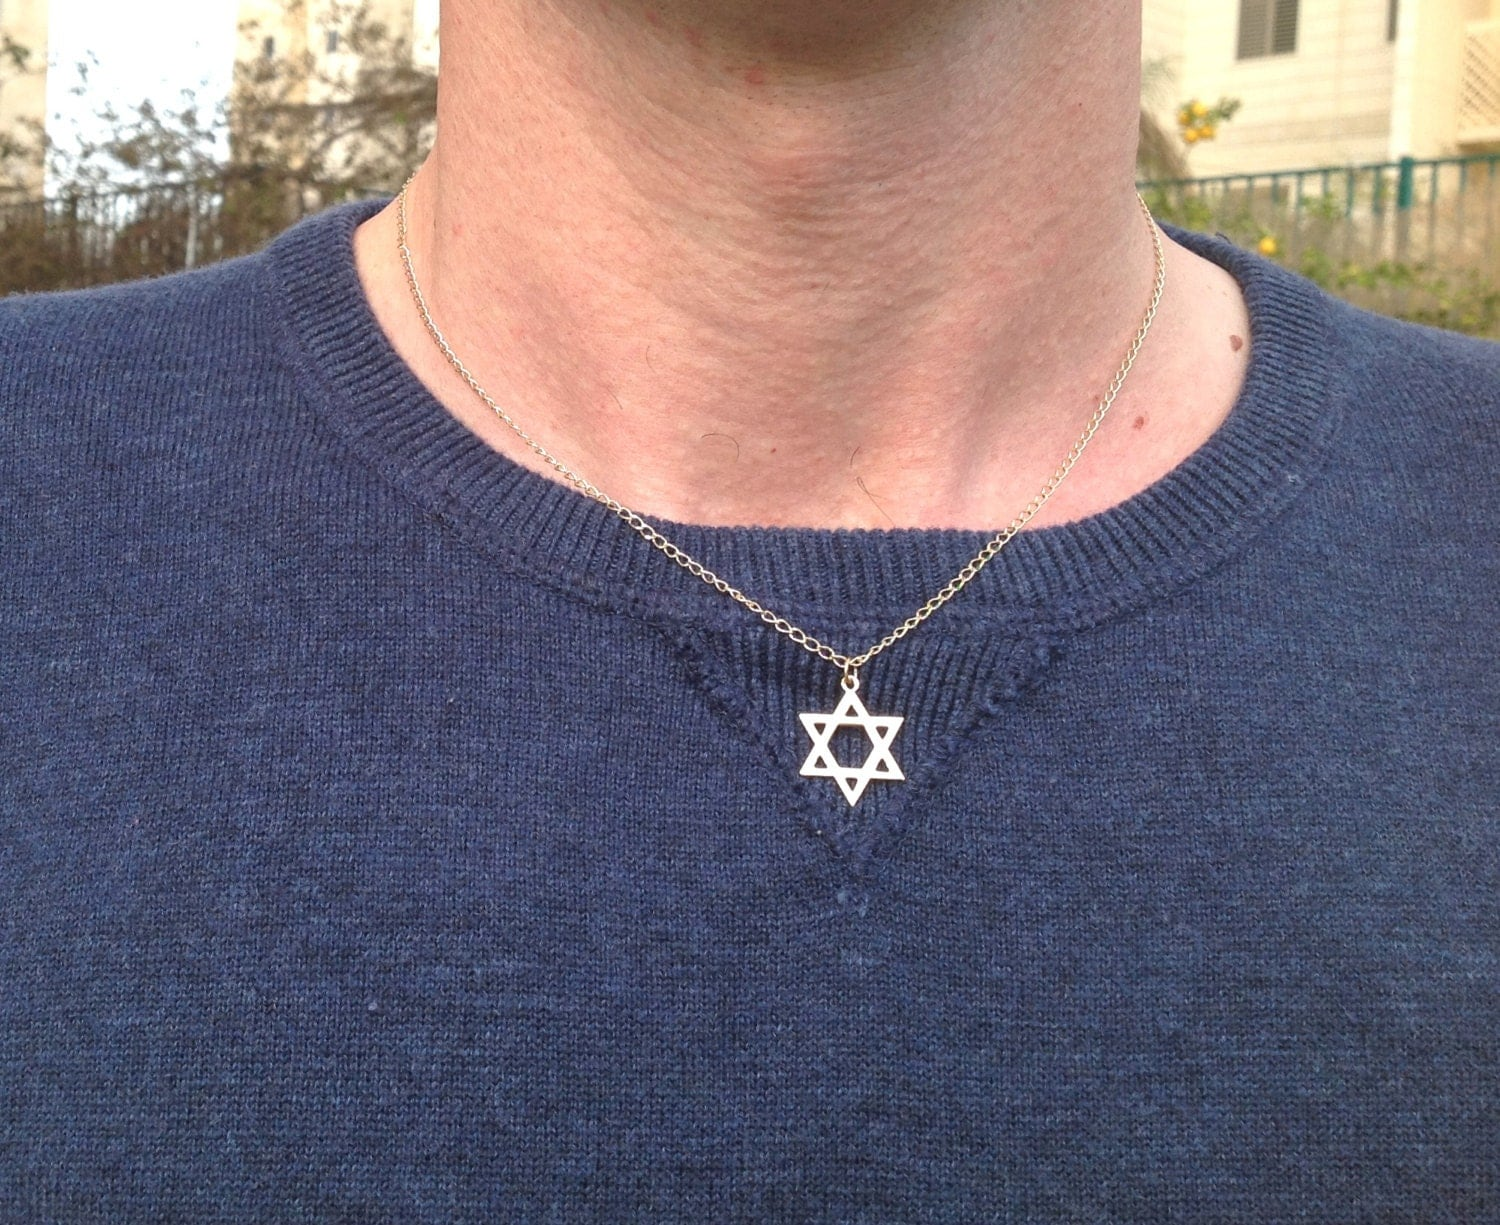 Mens necklacegold necklace for menstar of david for Star of david necklace mens jewelry